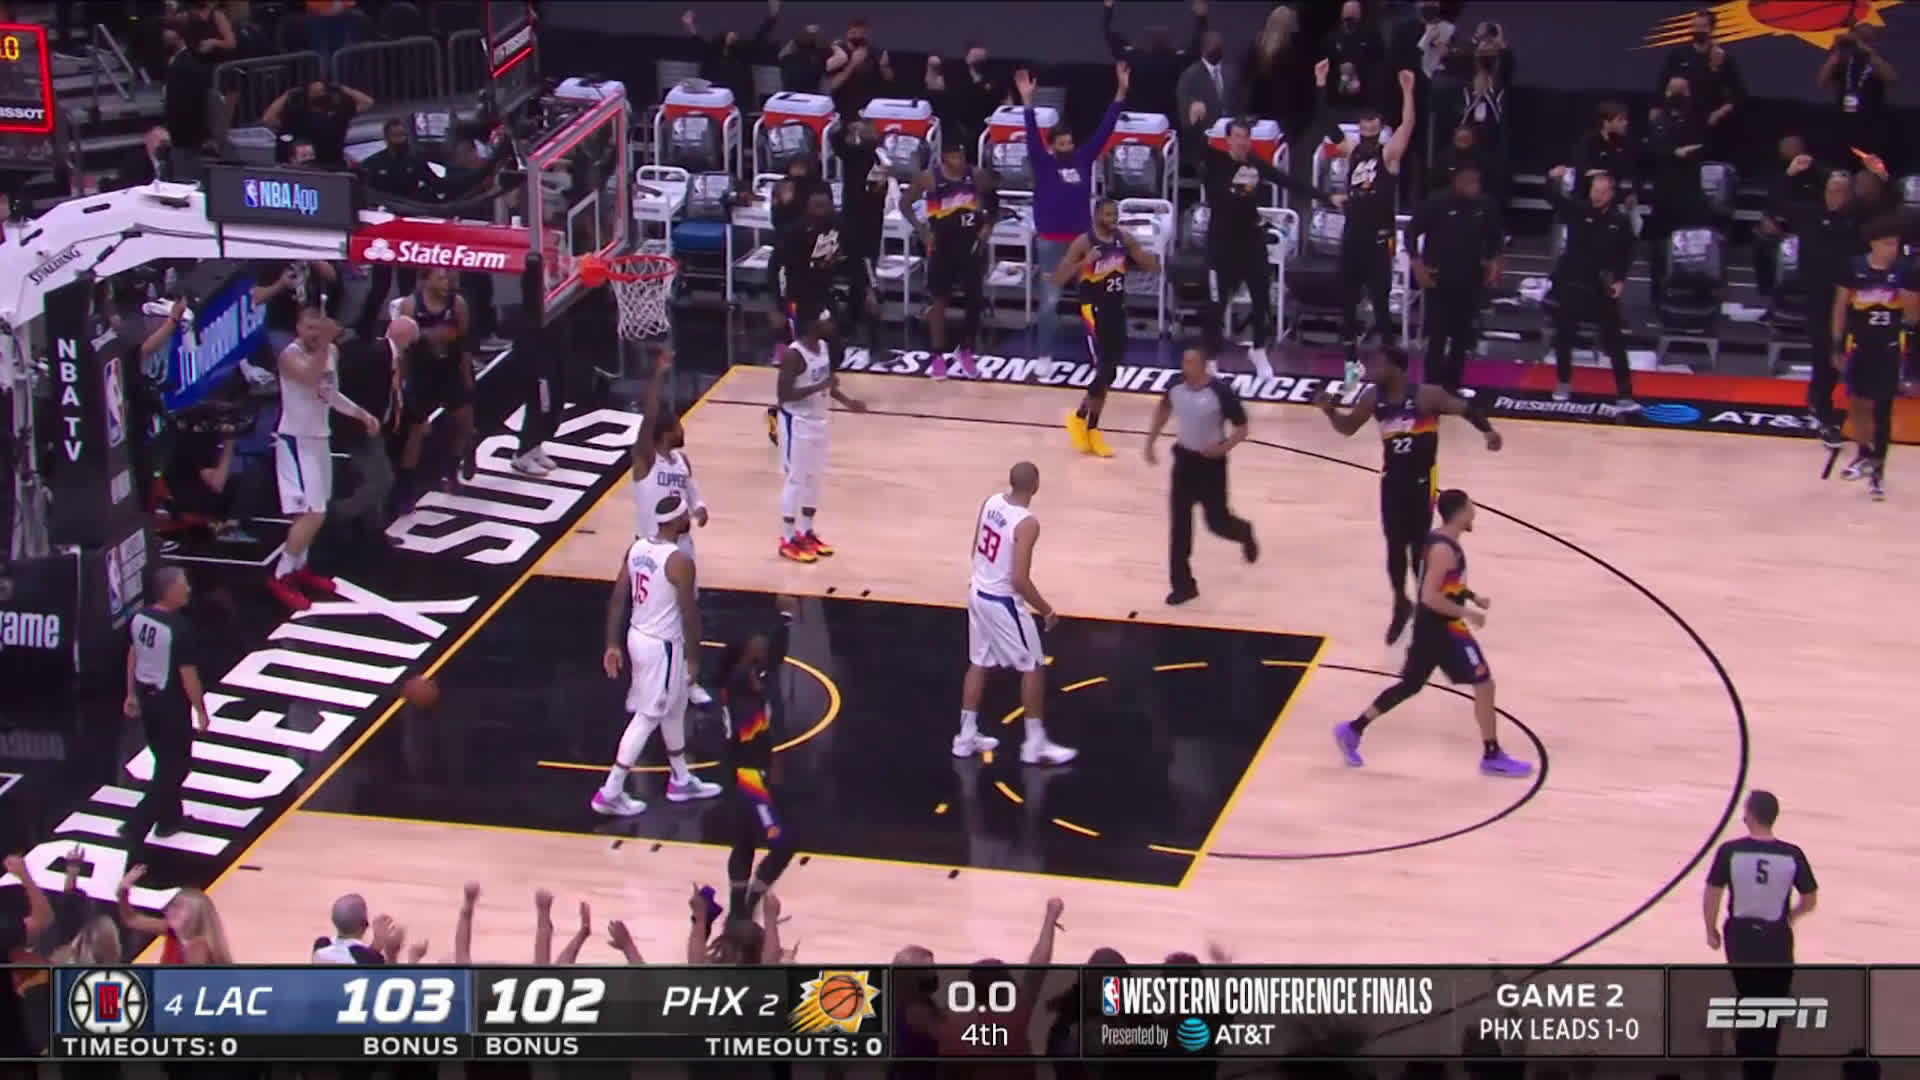 [Highlight] Ayton with the alley oop buzzer beater to steal Game 2